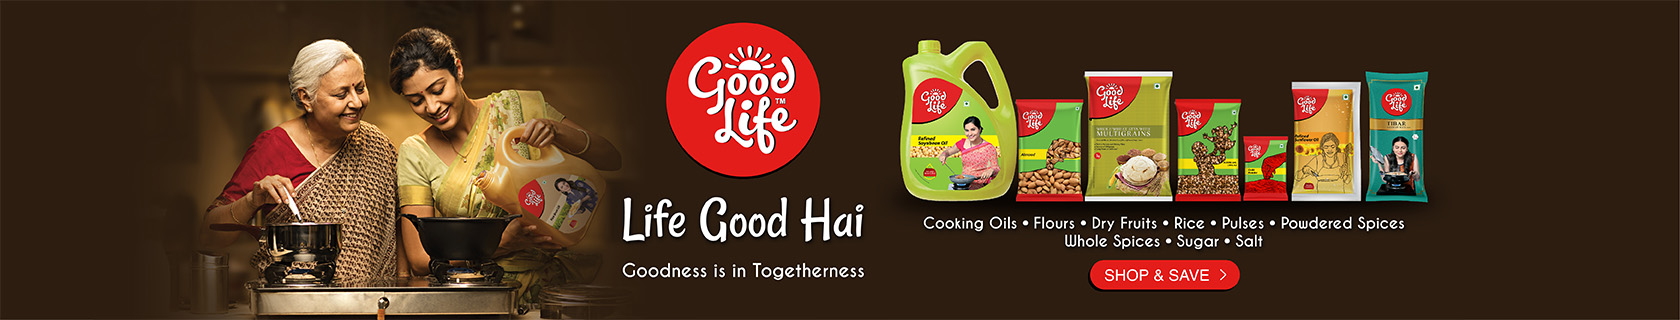 Good life products